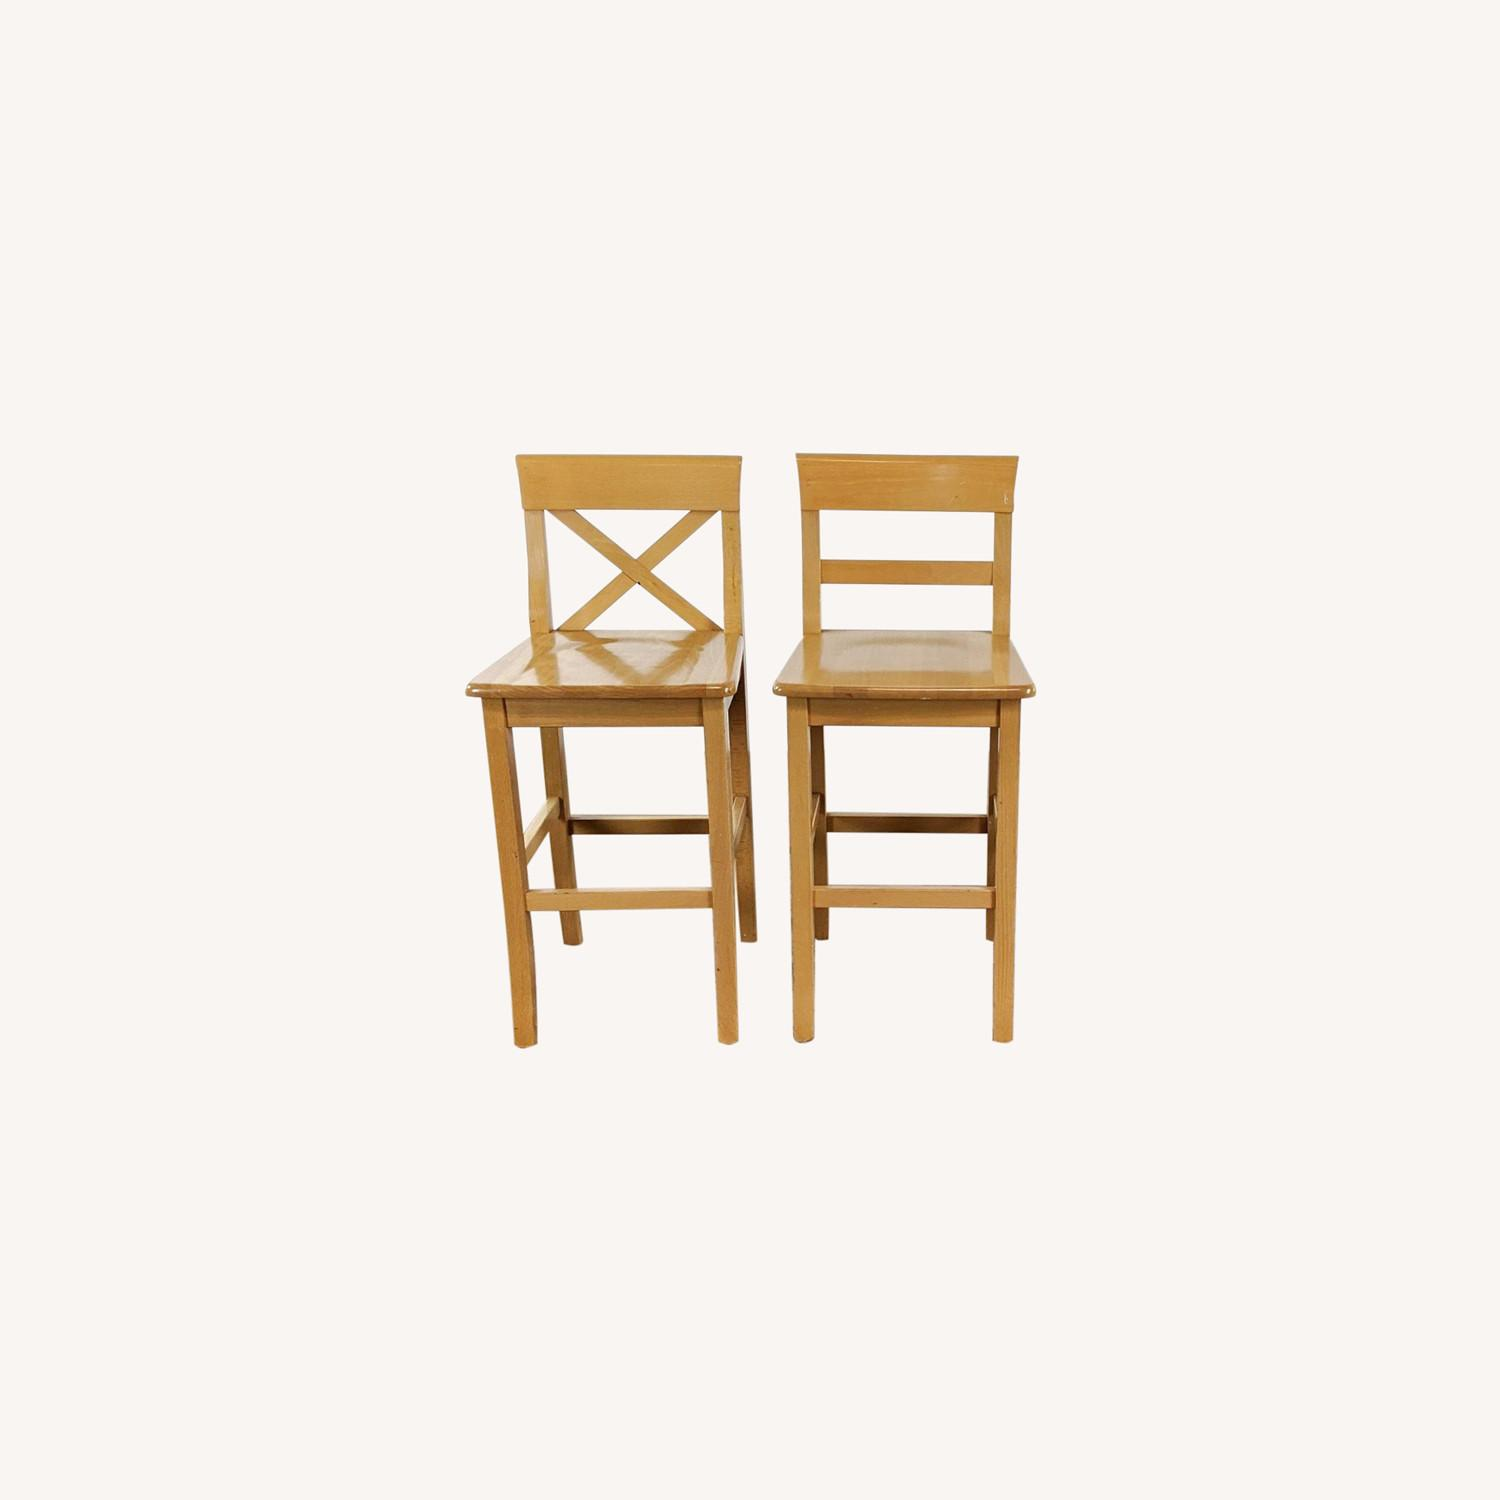 Wooden Stools - image-0